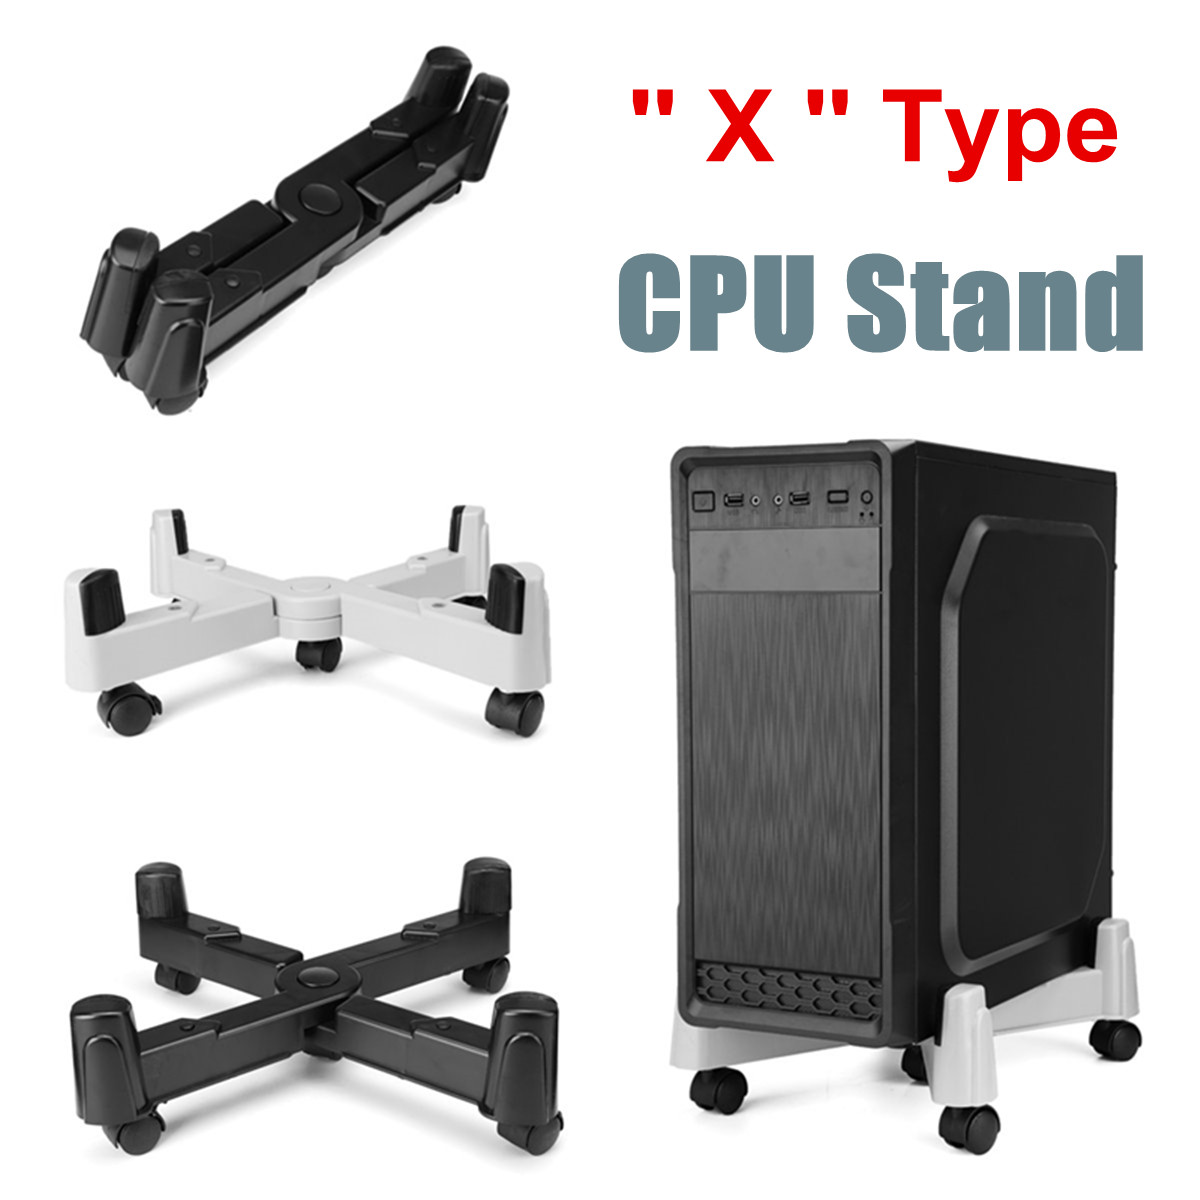 PC Computer Adjustable CPU Stand ABS Plastic Tower Case Holder With Swivel Mobile Castors Wheels Home Office Tools Black/White